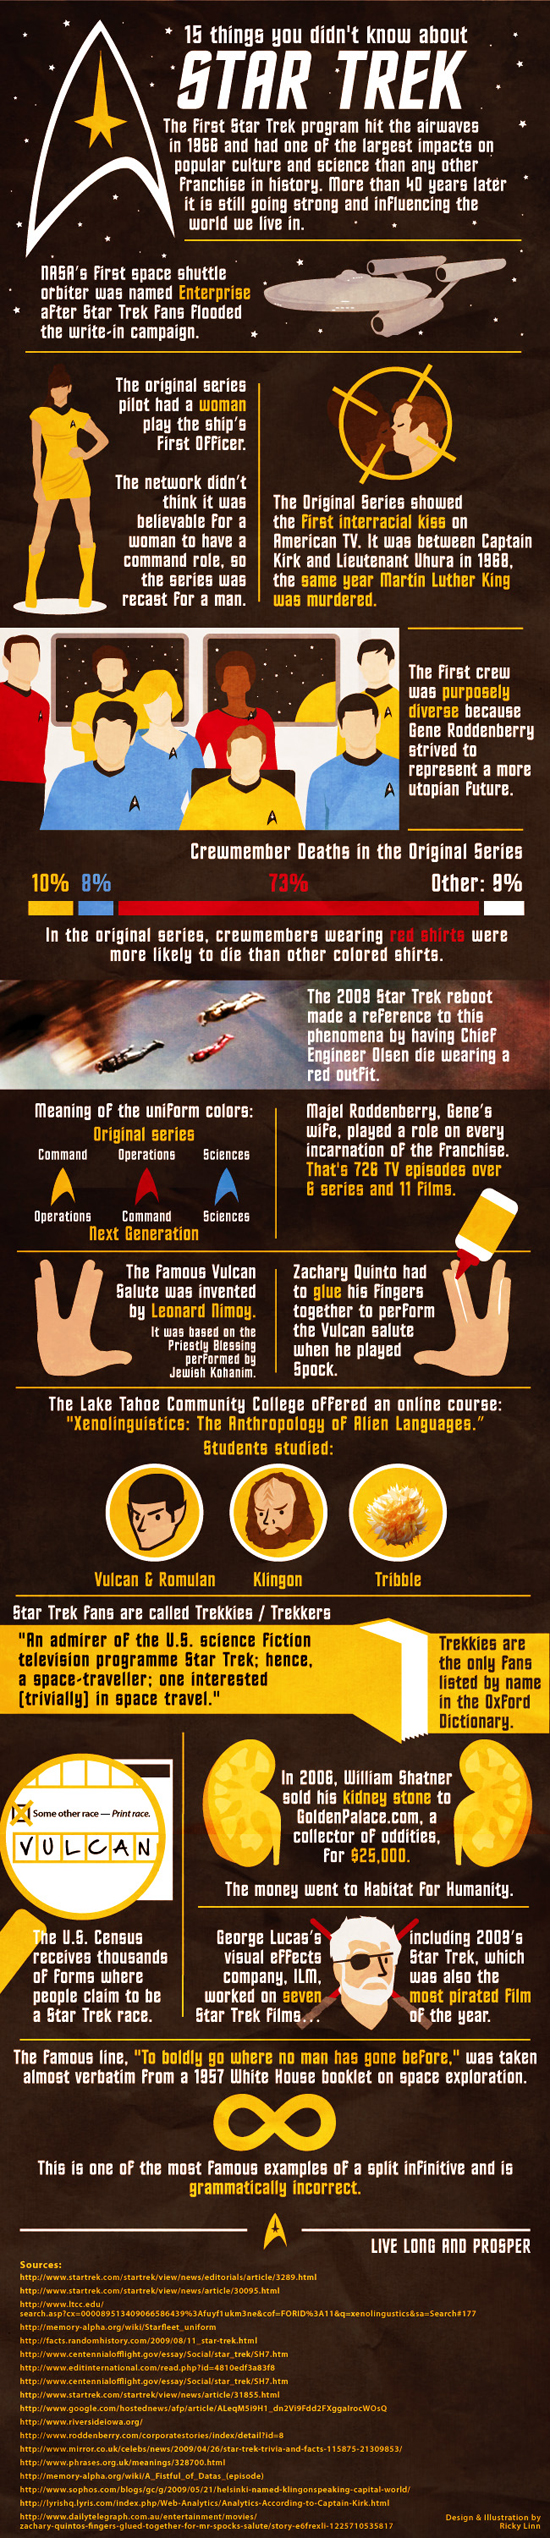 Star Trek: 15 Fascinating Facts You Haven't Heard Before - Infographic